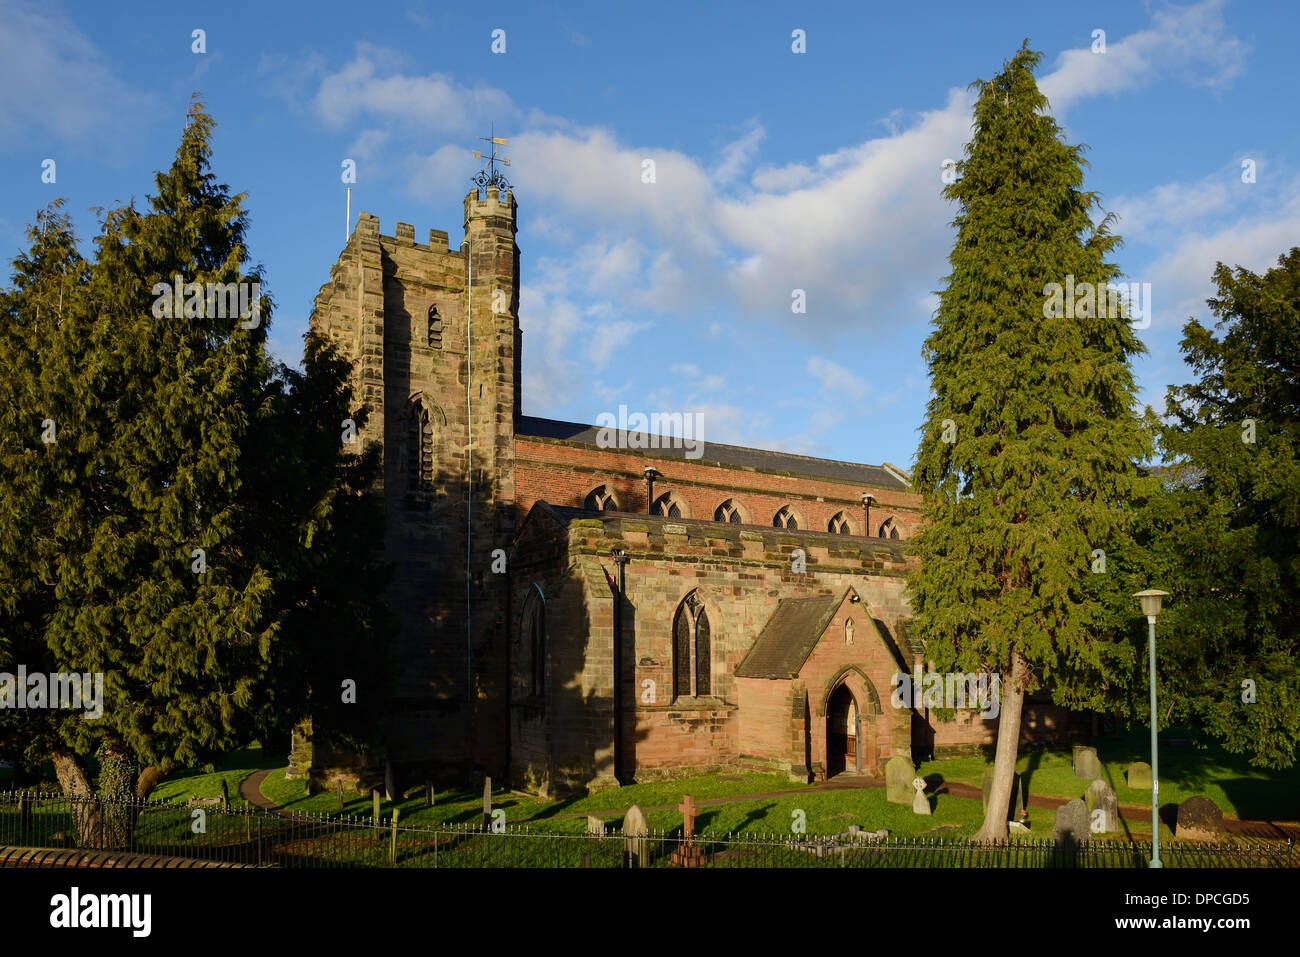 St Chads church in Lichfield city centre UK - Stock Image